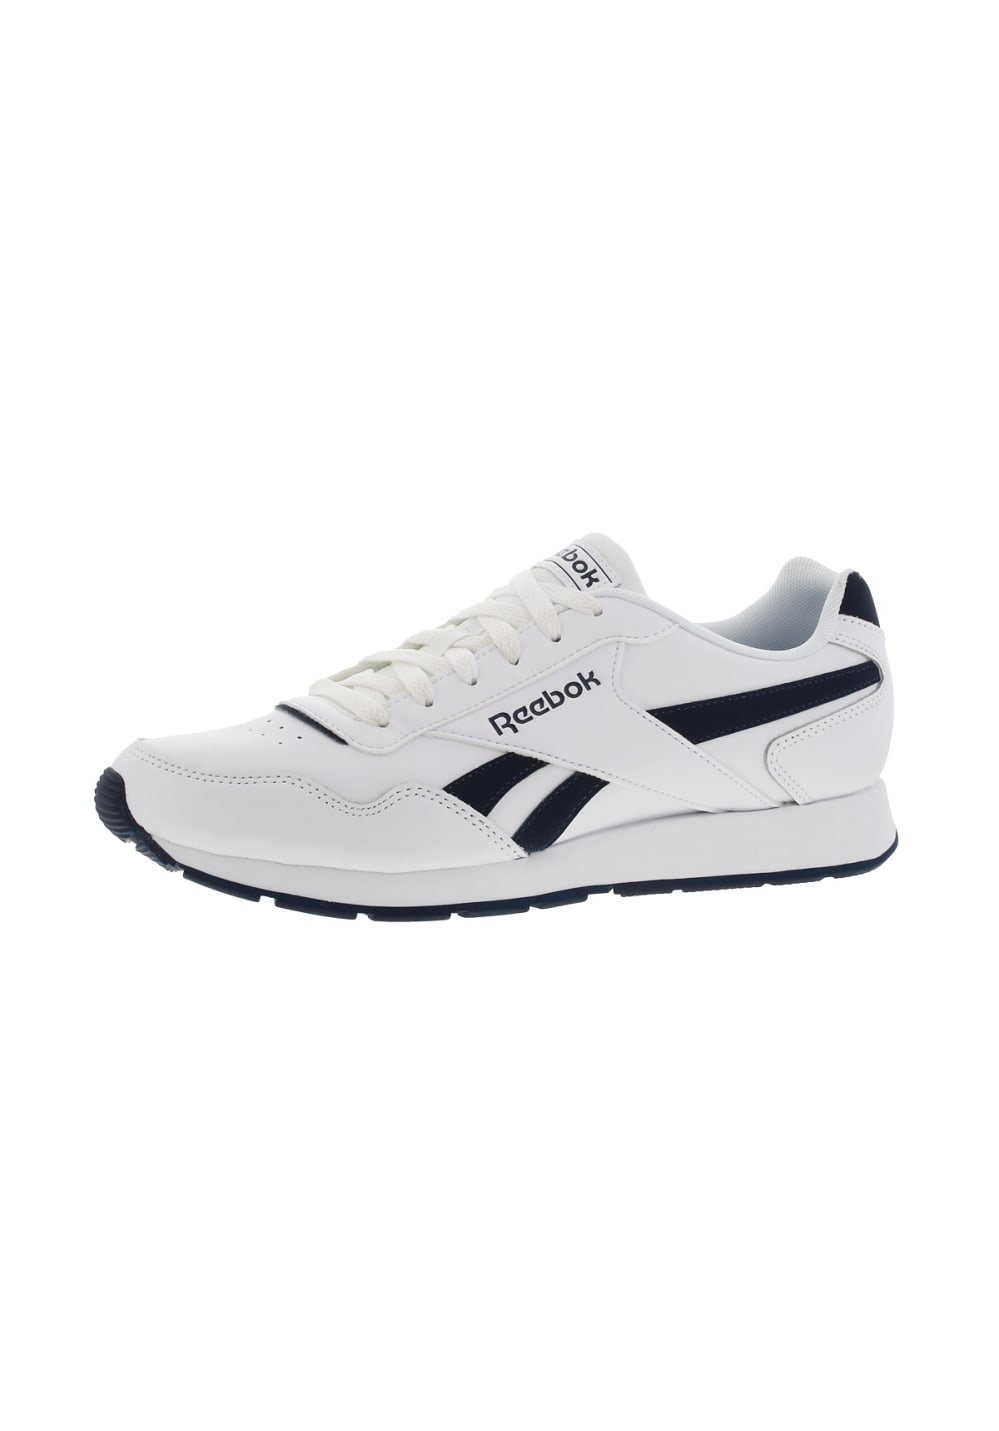 88425022f107 Next. -60%. Reebok. Royal Glide - Sneaker for Men